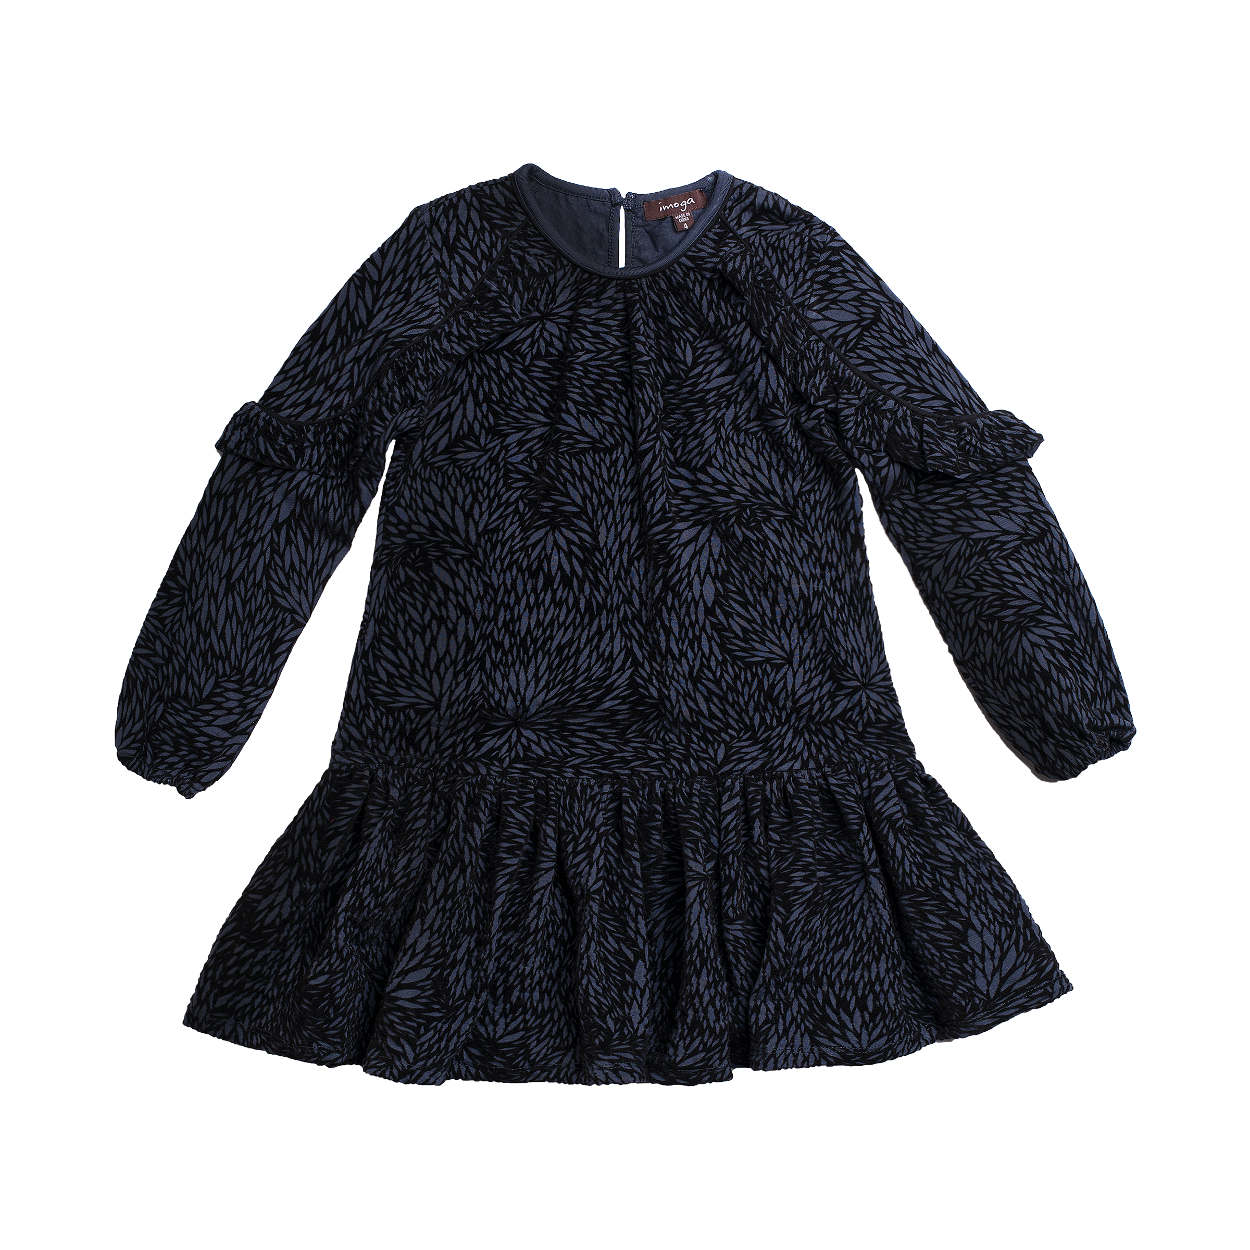 Imoga Navy Robin Dress